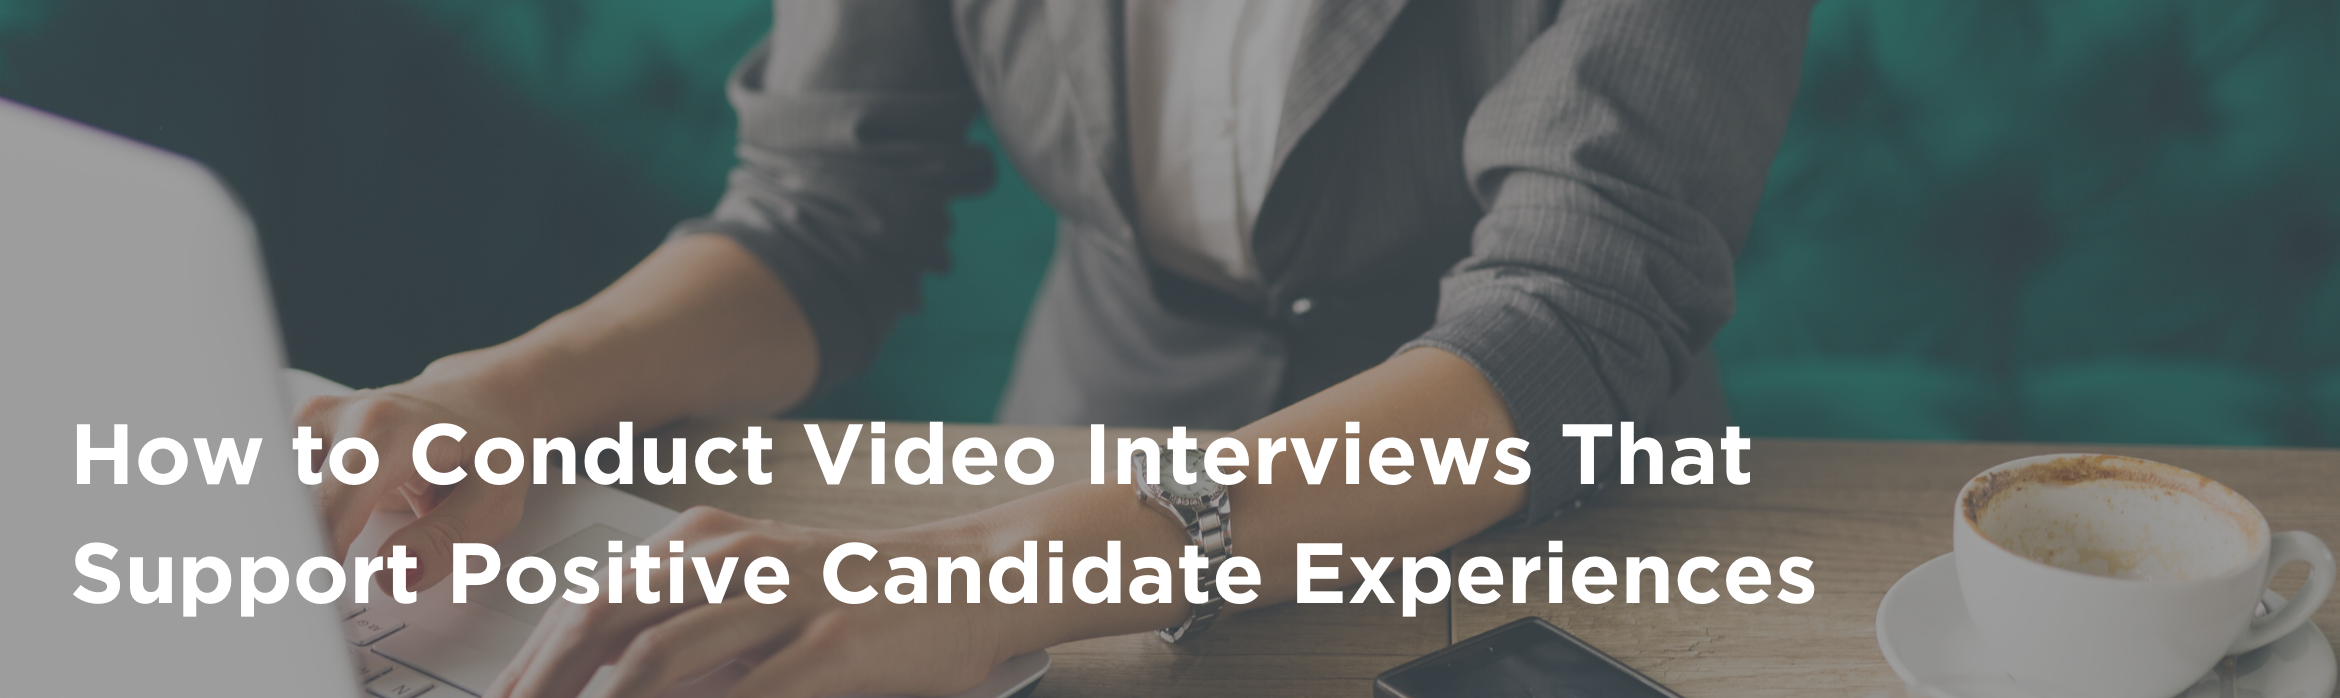 How to Conduct Video Interviews That Support Positive Candidate Experiences